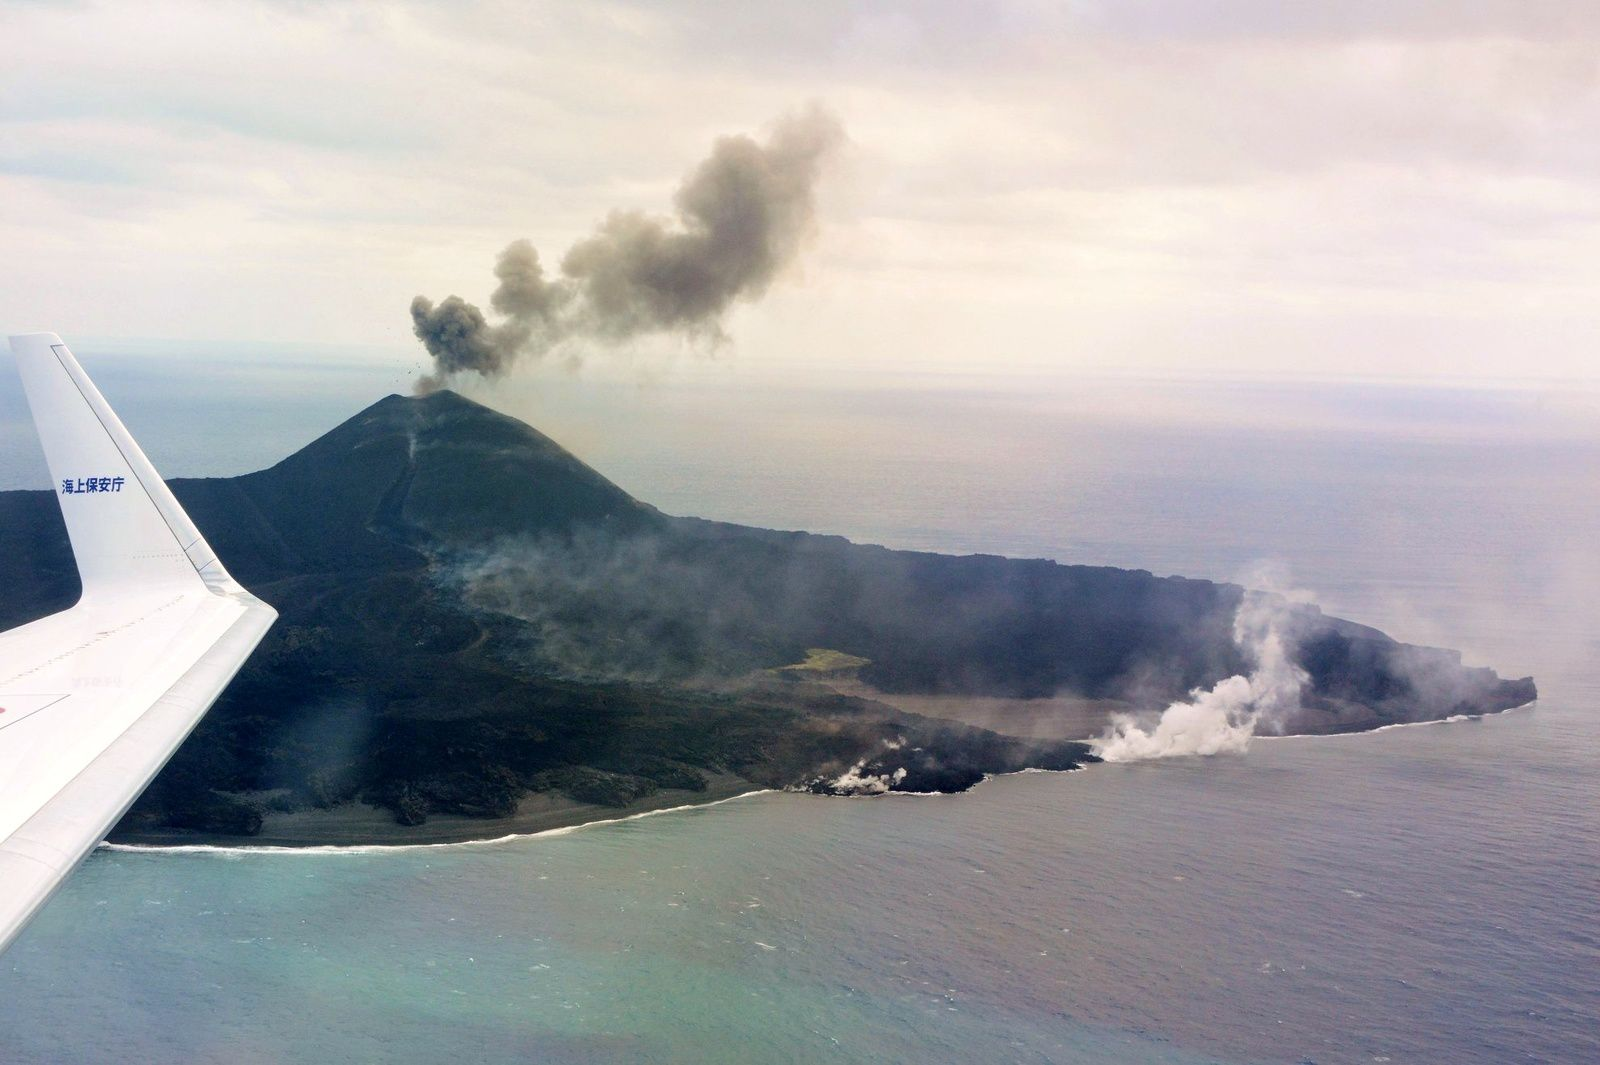 Nishinoshima - 15.12.2019 - activity at the top and on the sides of the cone; and lava flows - photo Japan Coast Guards